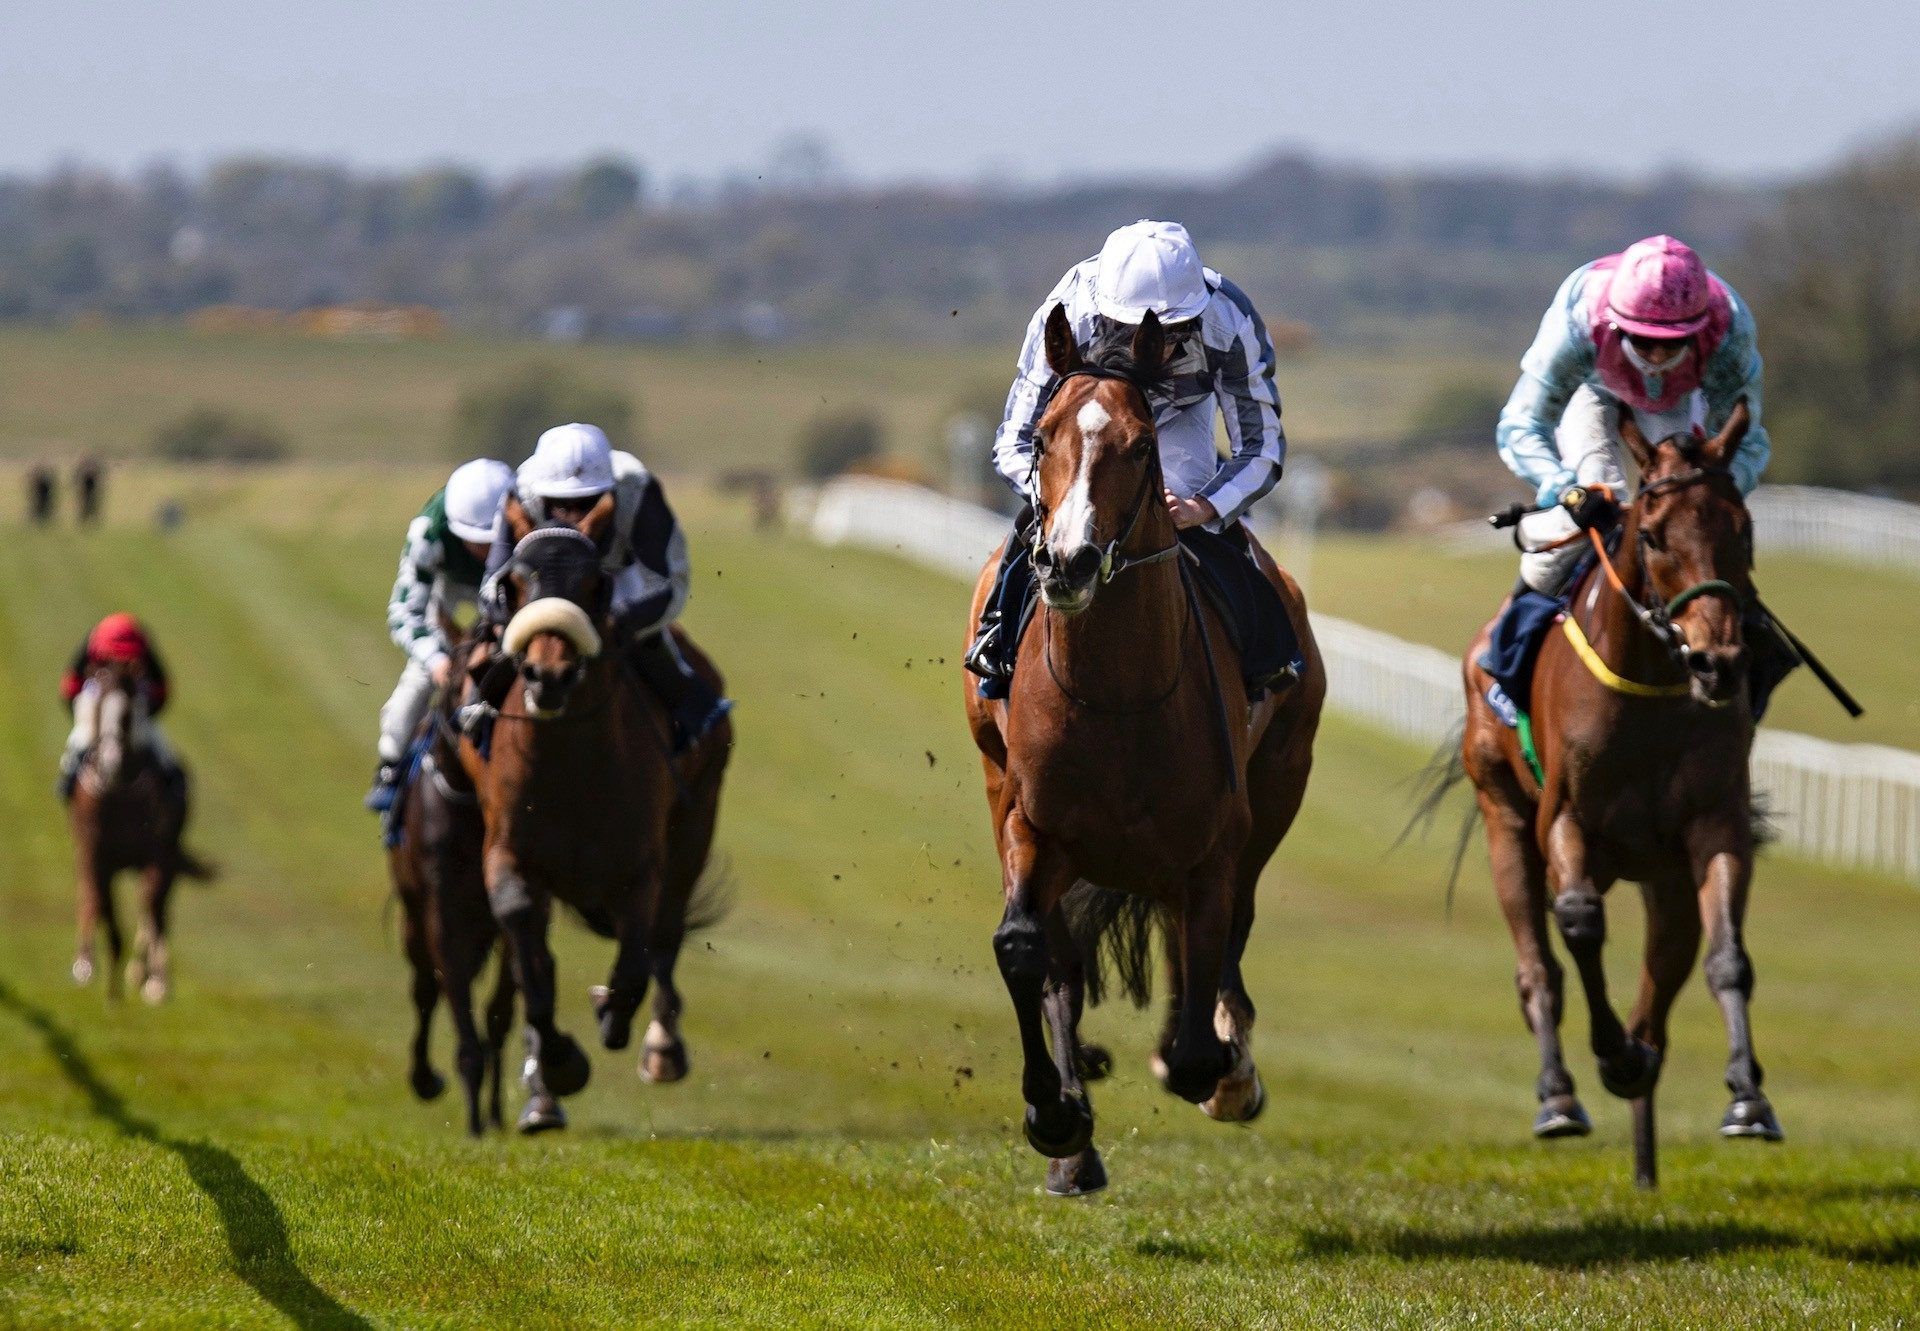 Broome (Australia) Wins The Gr.2 Mooresbridge Stakes At The Curragh